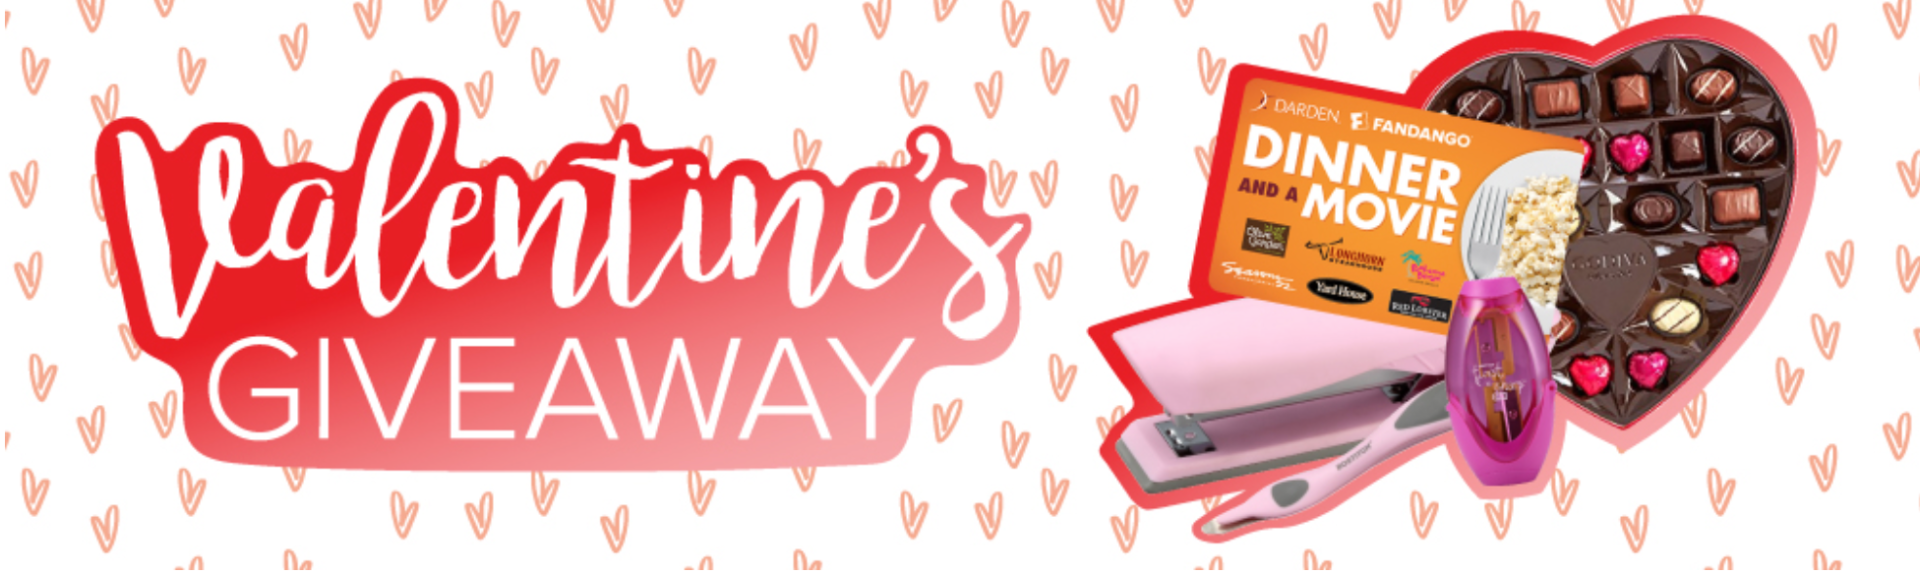 Enter the Bostitch Valentine's Day Giveaway